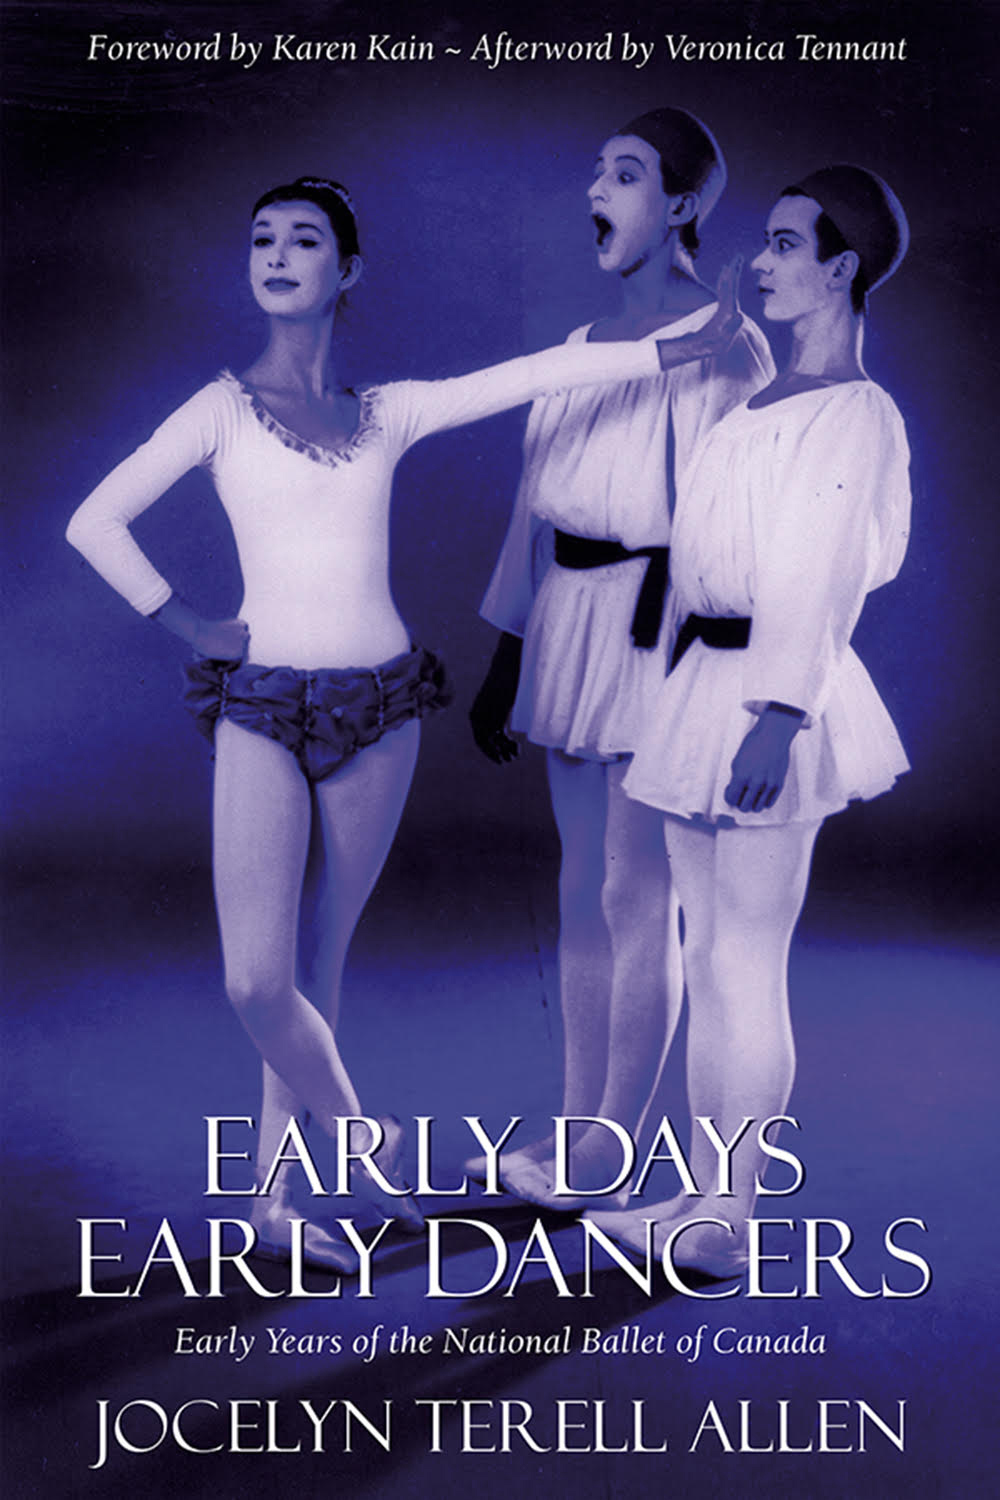 Early Days, Early Dancers: Early Years of the National Ballet